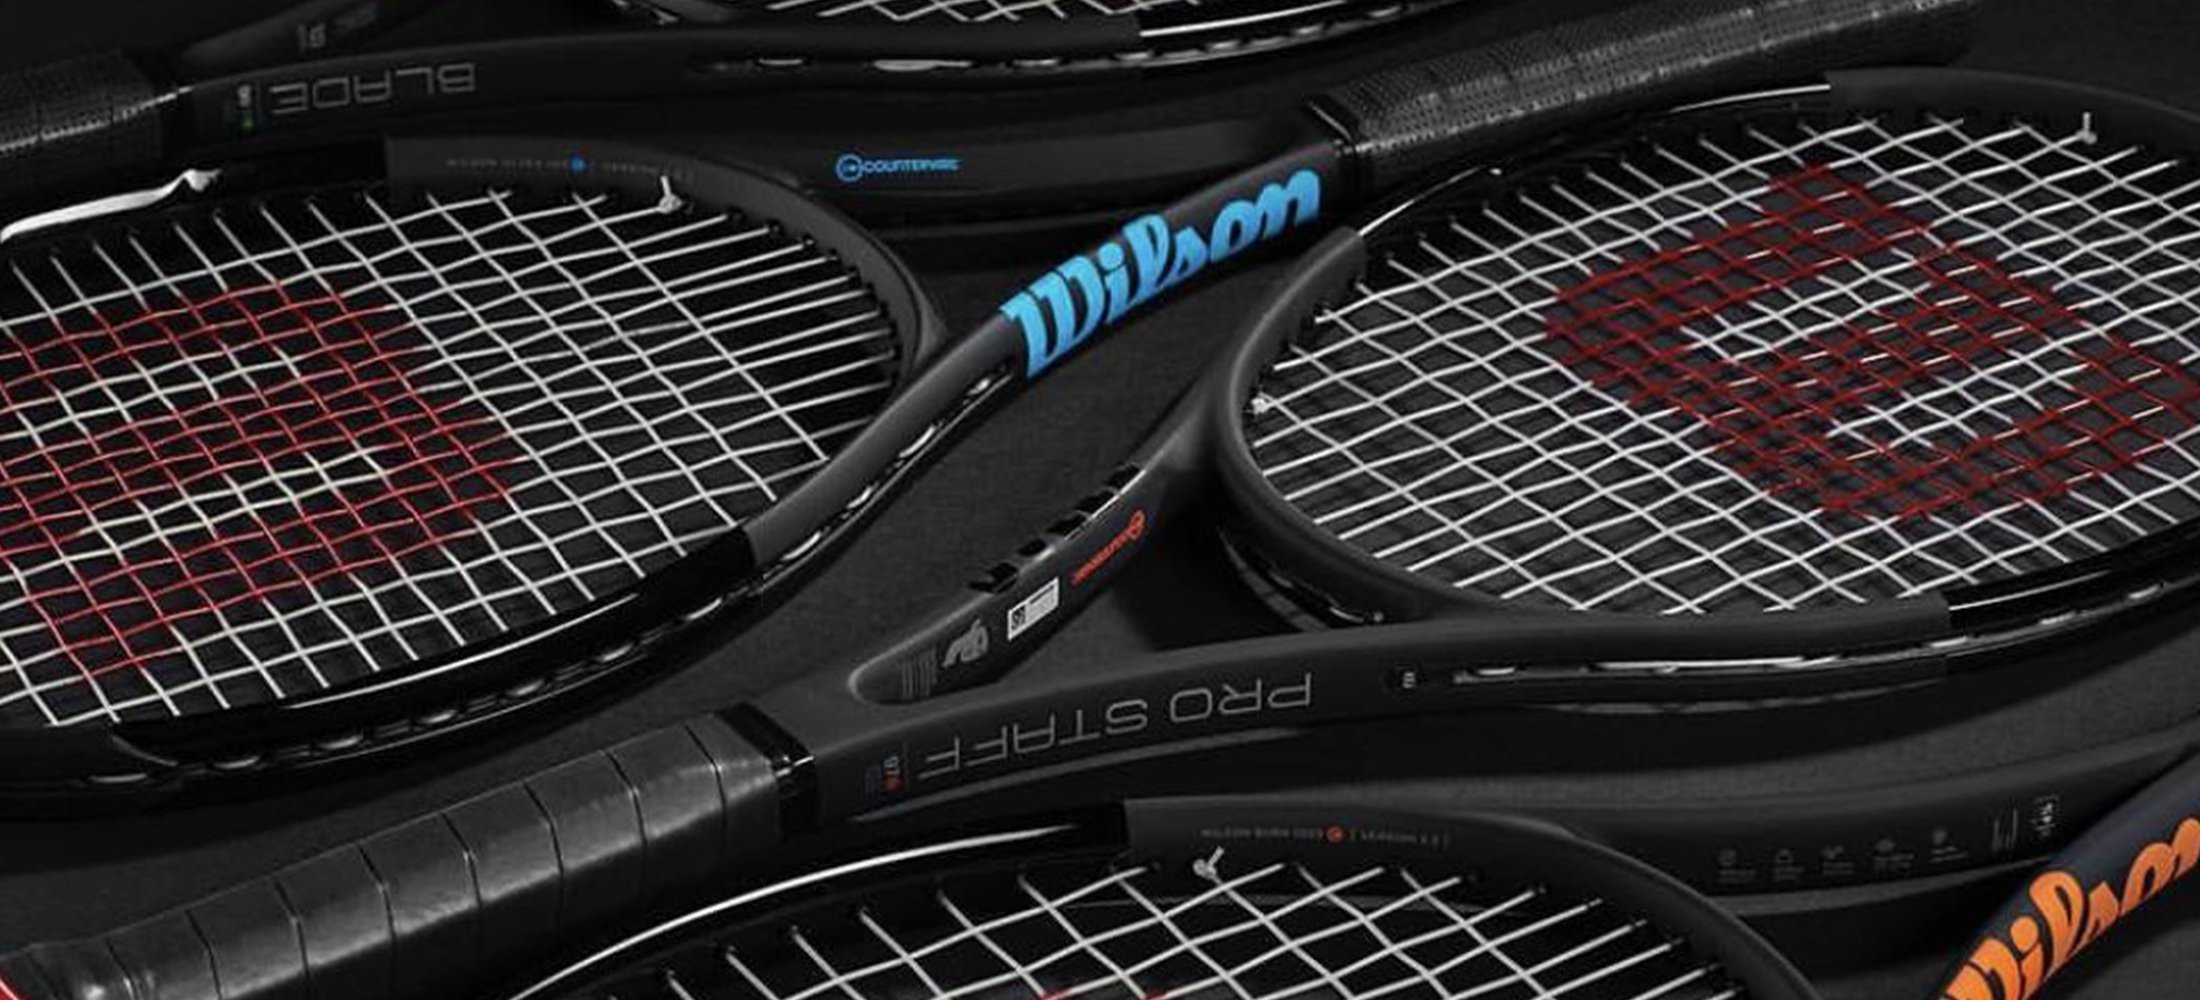 Top Tennis Brands